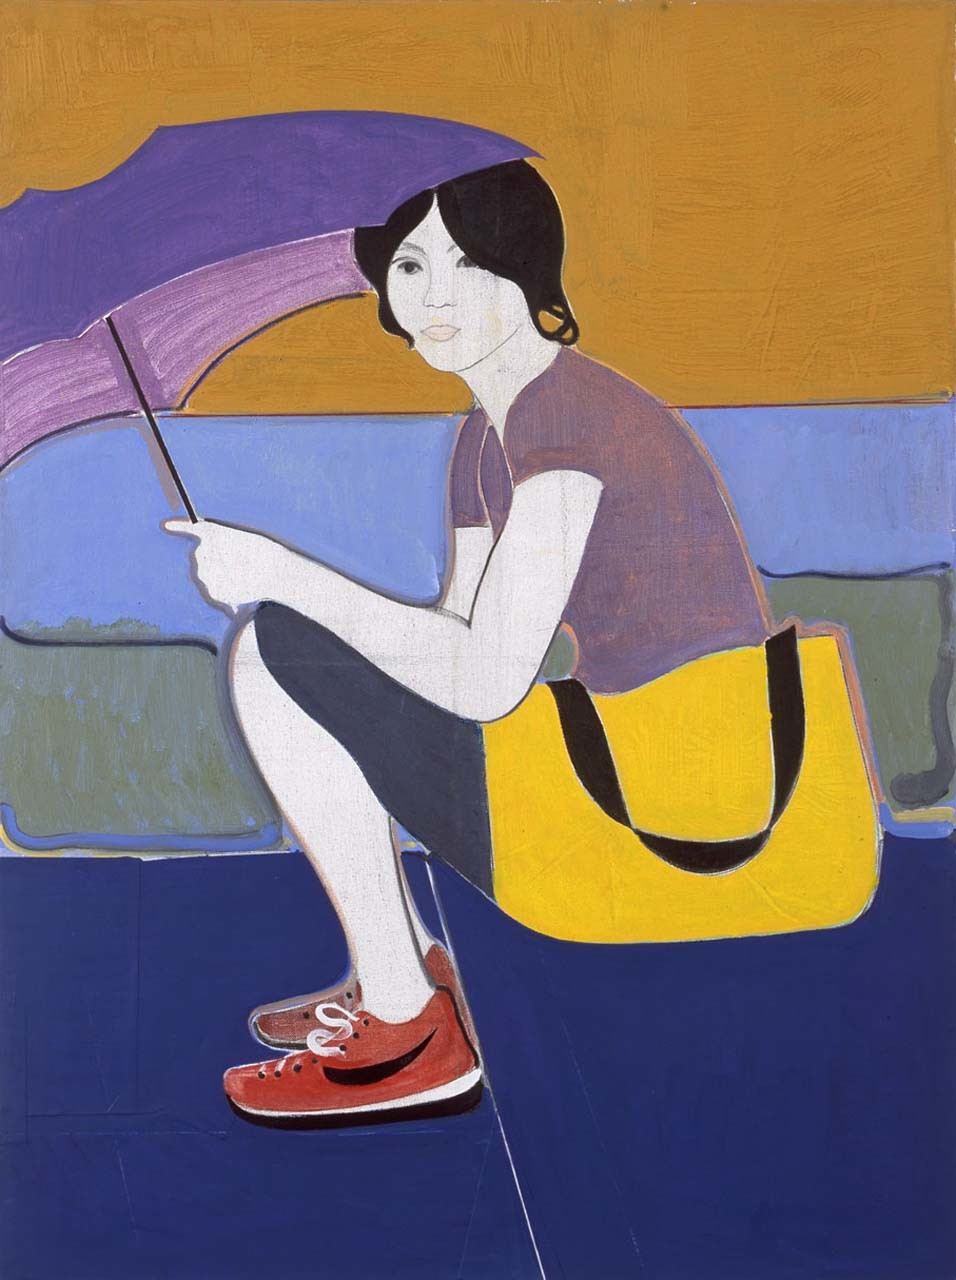 "<div class=""artwork_caption""><p>Woman with Purple Umbrella, 2010</p><p> </p></div>"